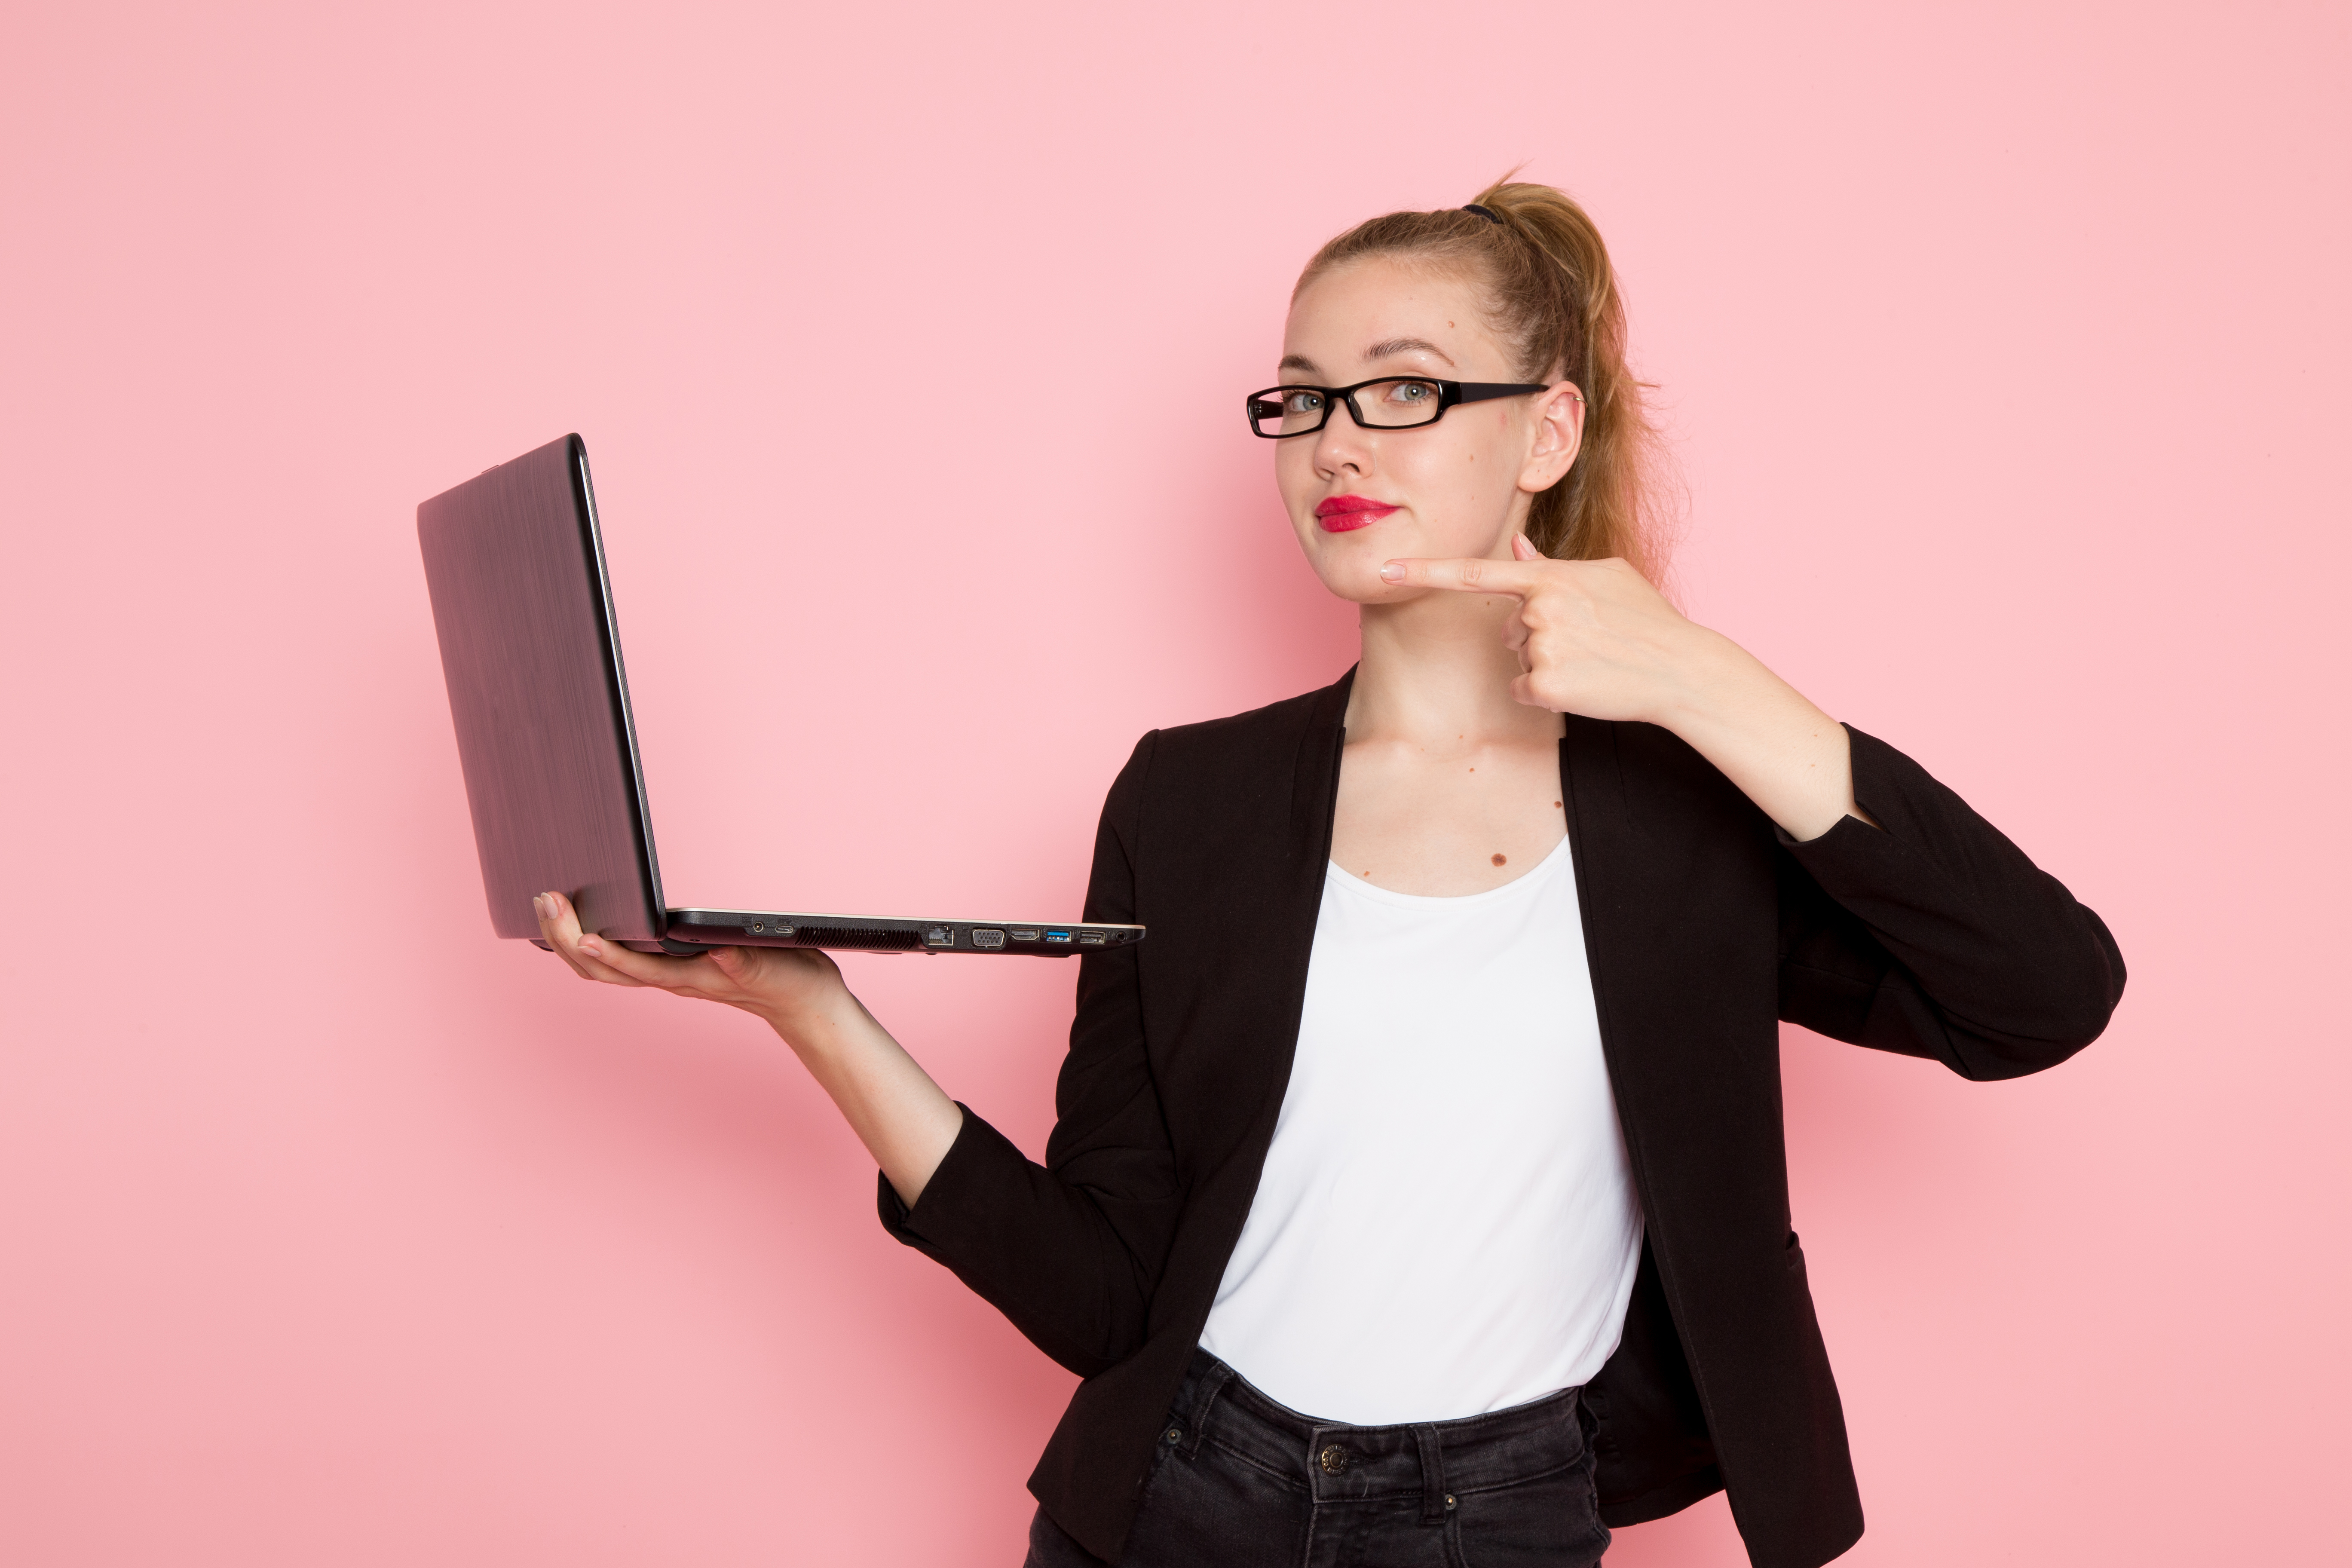 front-view-of-female-office-worker-in-black-strict-jacket-holding-using-laptop-on-light-pink-wall